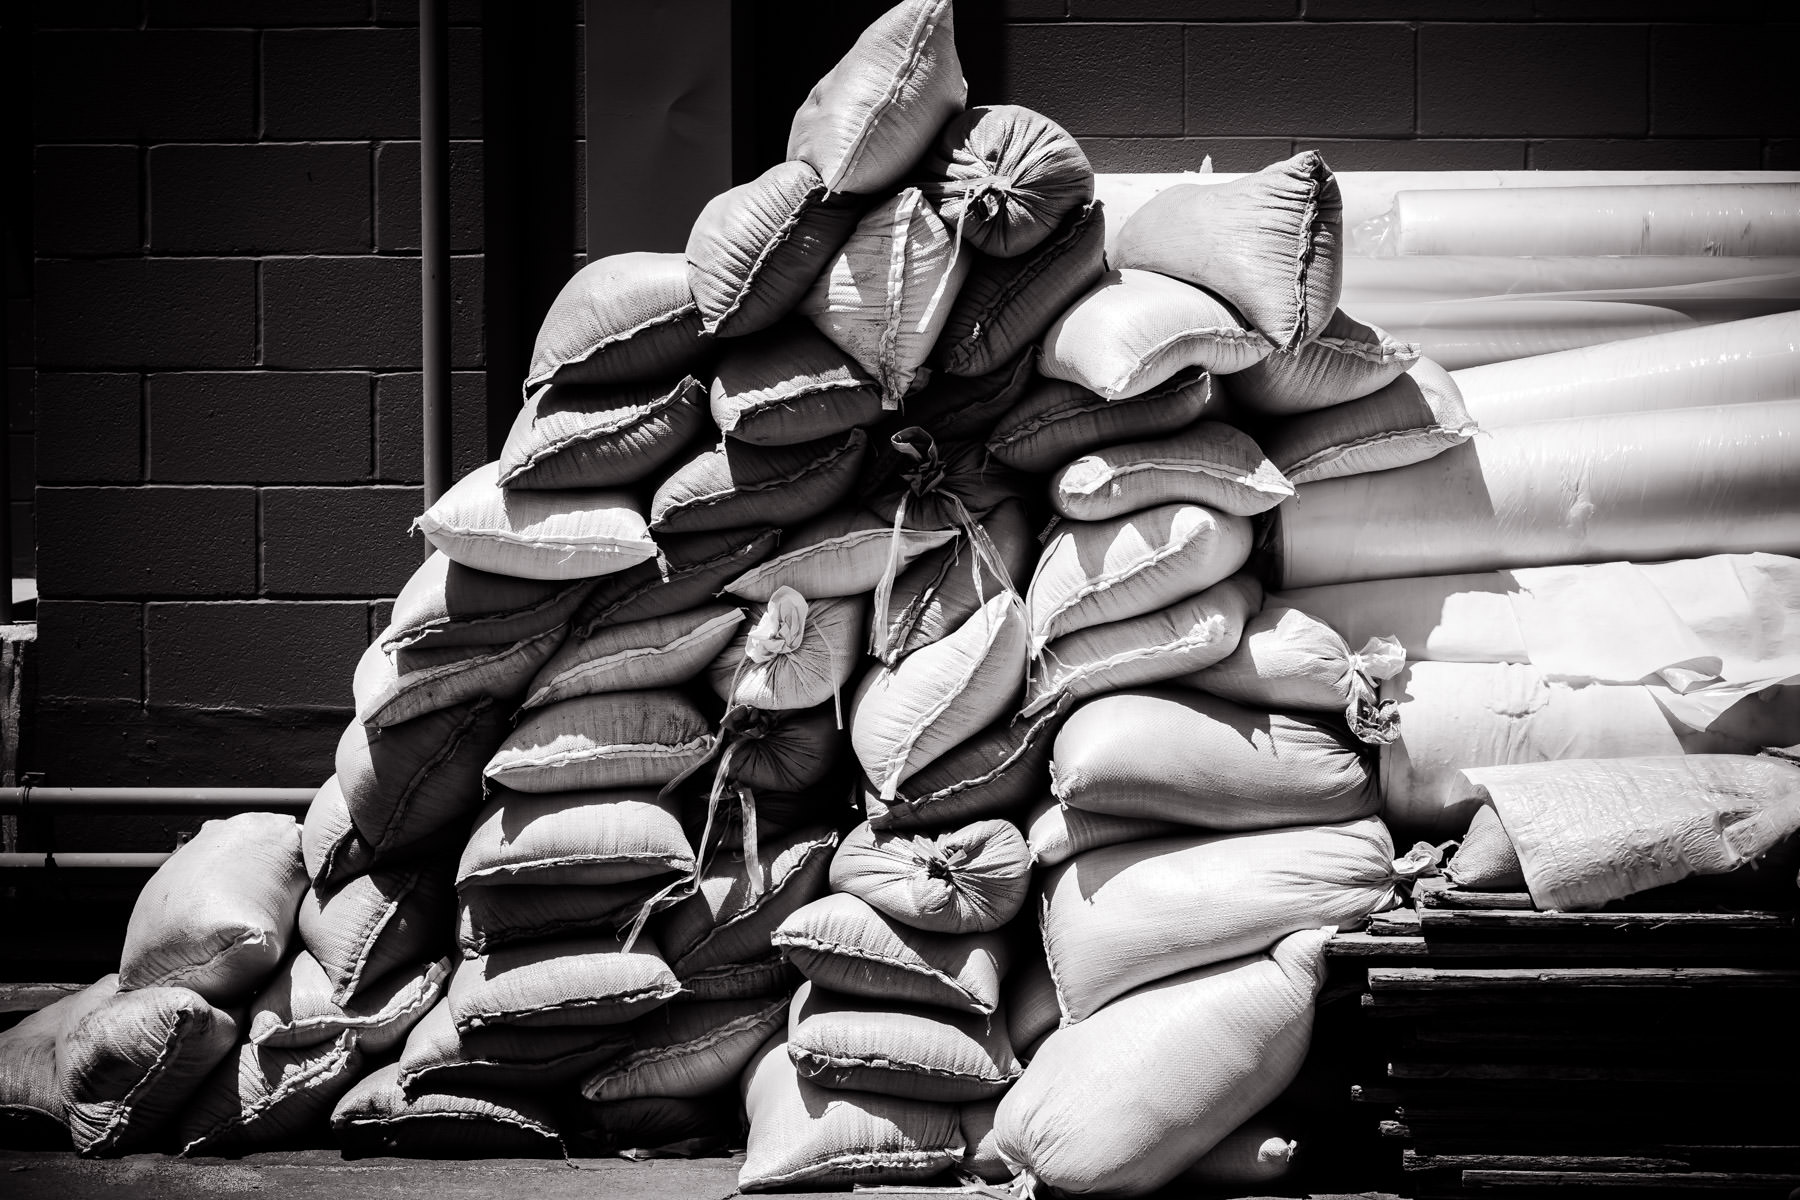 Sacks stacked behind a local strip mall in Dallas, Texas.